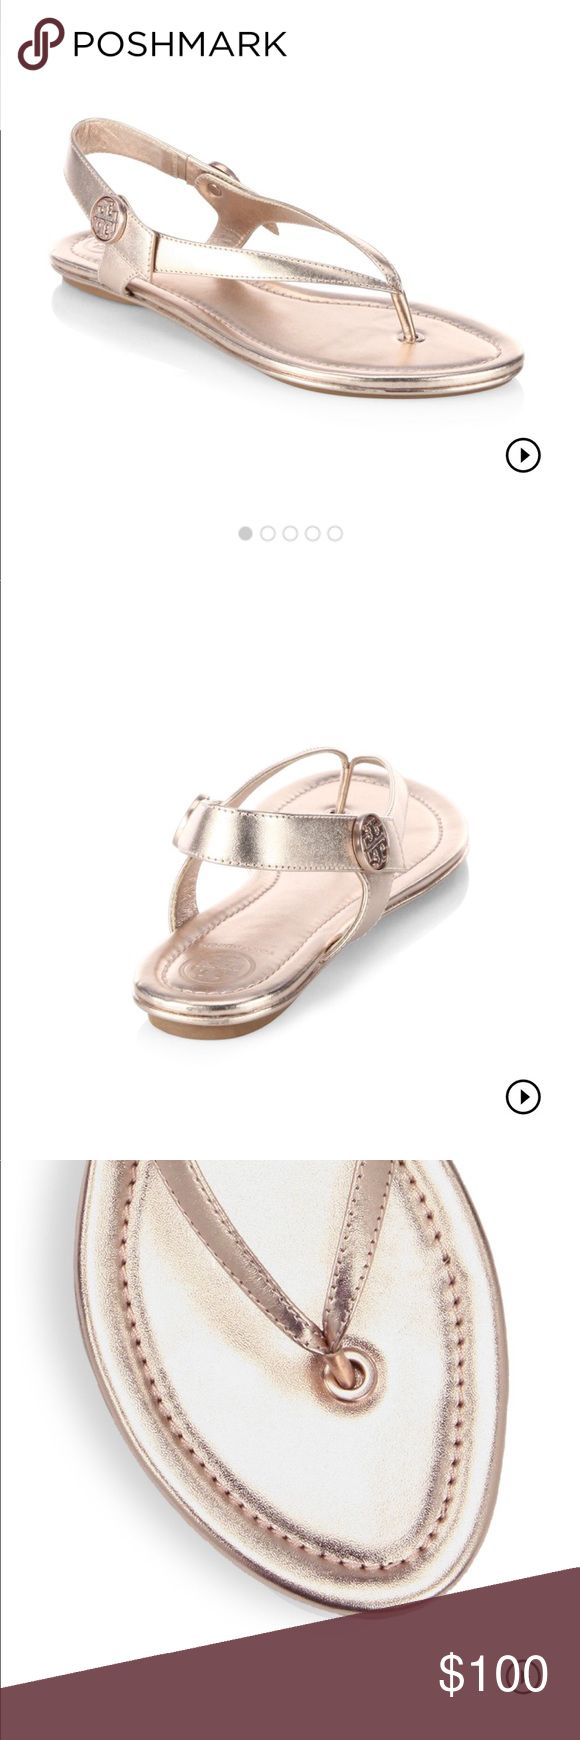 New Tory burch Minnie Travel Sandal rose gold Sold out online... beautiful beautiful sandal. Perfect for spring and summer time!  ordered online but not the right size for me 😩  If I don't sell them in the next 2 days, I will send them back to the store, but just want to try to sell them first to a lucky girl. still in original box, packaged and ready to go (includes the box, dust bag, etc) Tory Burch Shoes Sandals